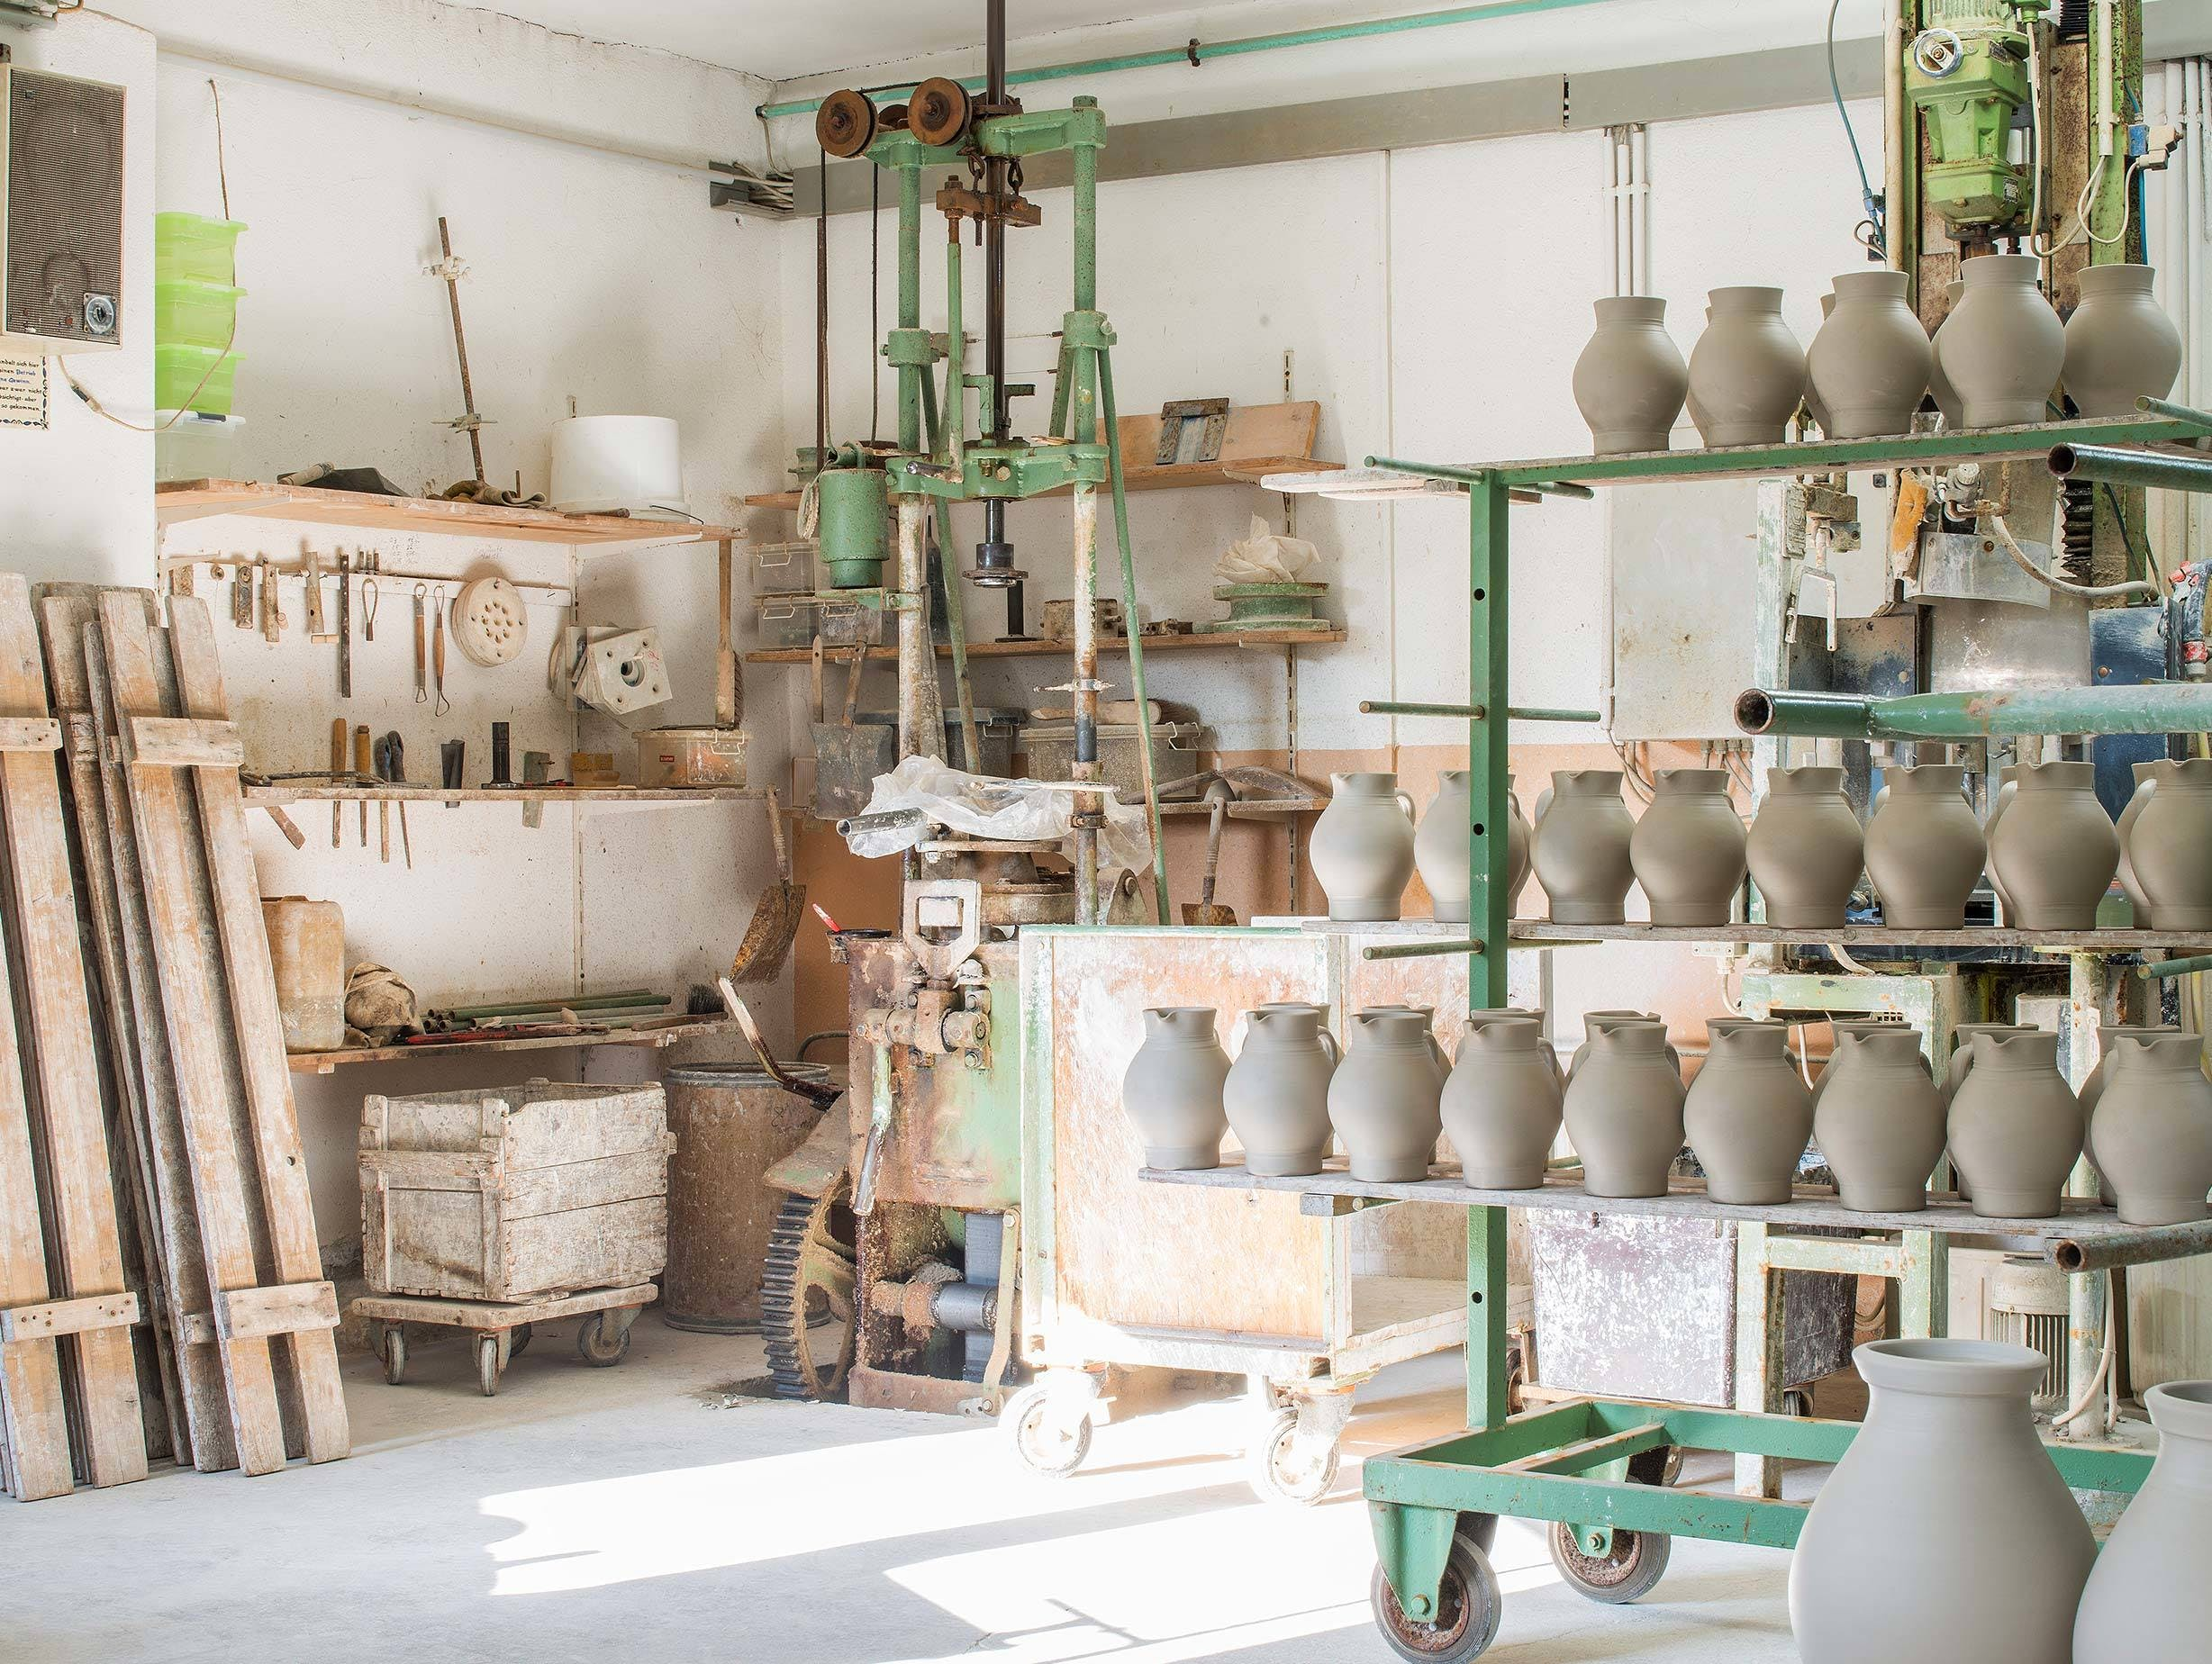 Frankfurt Pottery In The Making E15 image